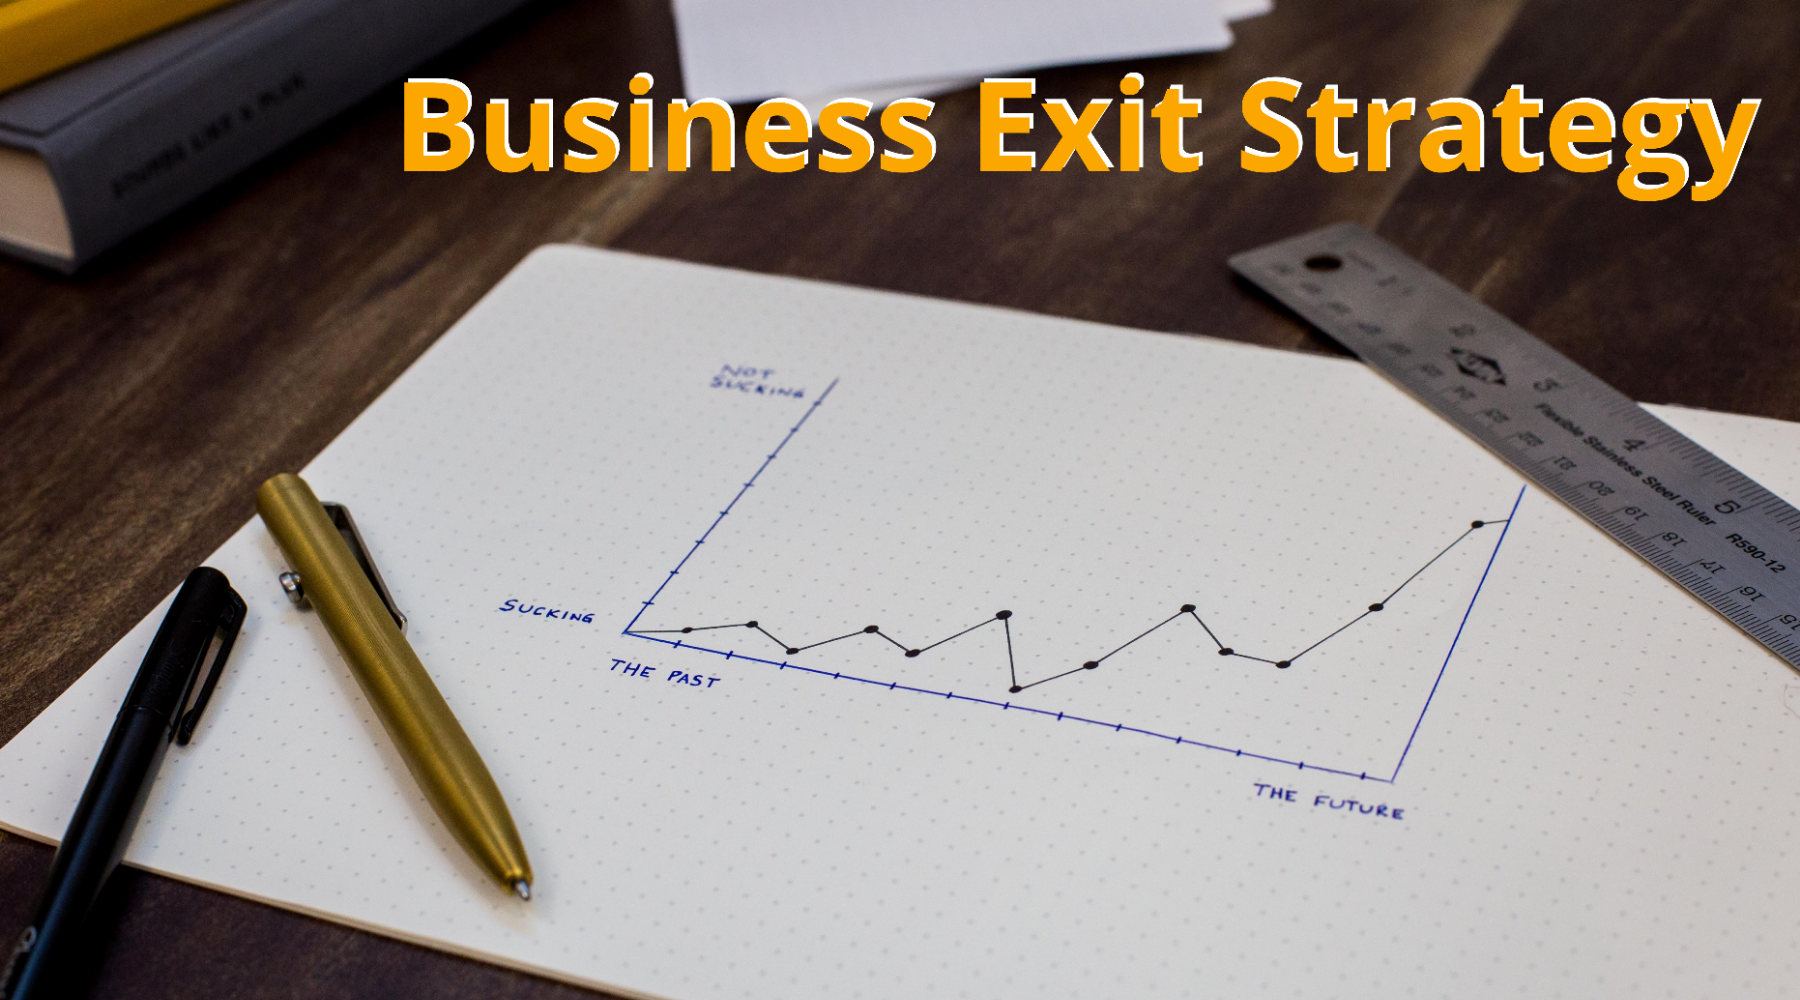 What is a Business Exit Strategy? Some of the Top Business Exit Strategies